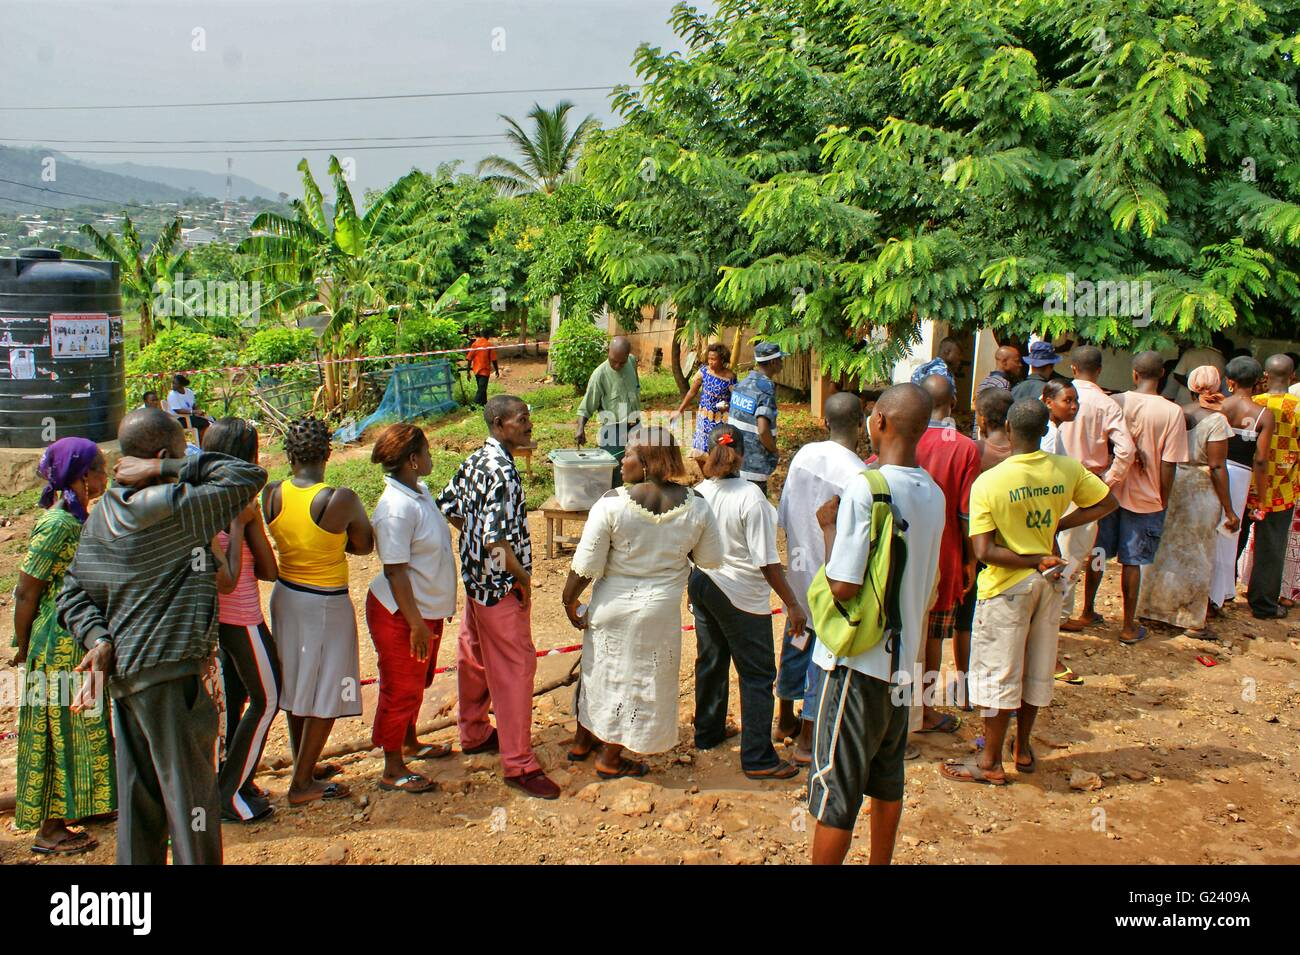 Ghana Voters waiting patiently, to vote. Man putting his vote into the sealed box. Ghana General Election. - Stock Image